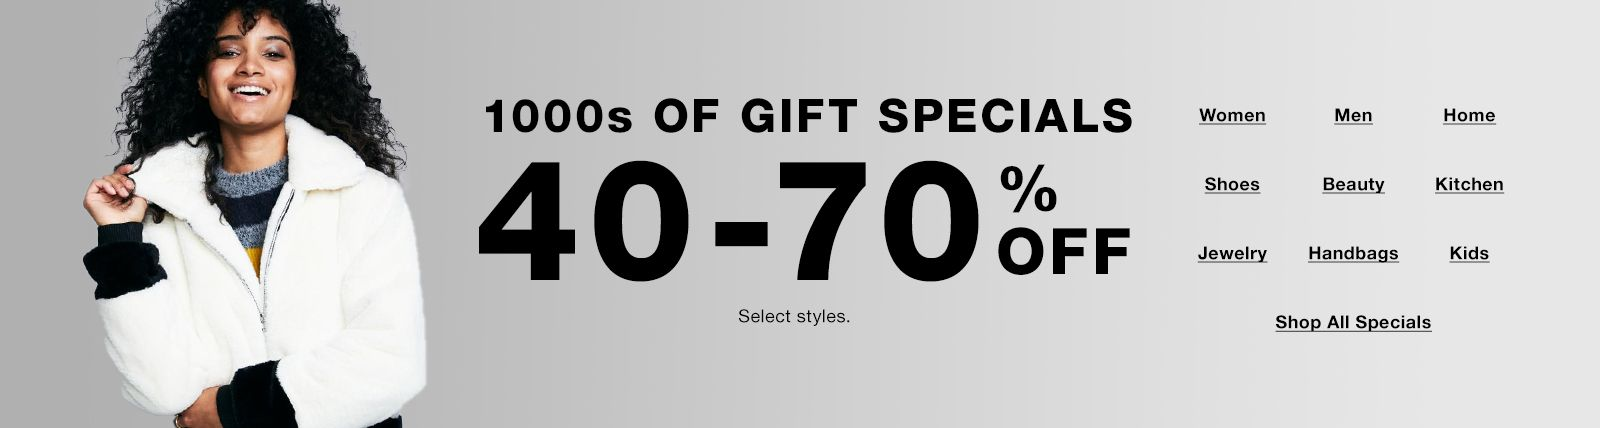 1000s of Gift Specials,40-70 percent off, select styles, Women, Men, Home, Shoes, Beauty, Kitchen, Jewelry, Handbags, Kids, Shop All Specials